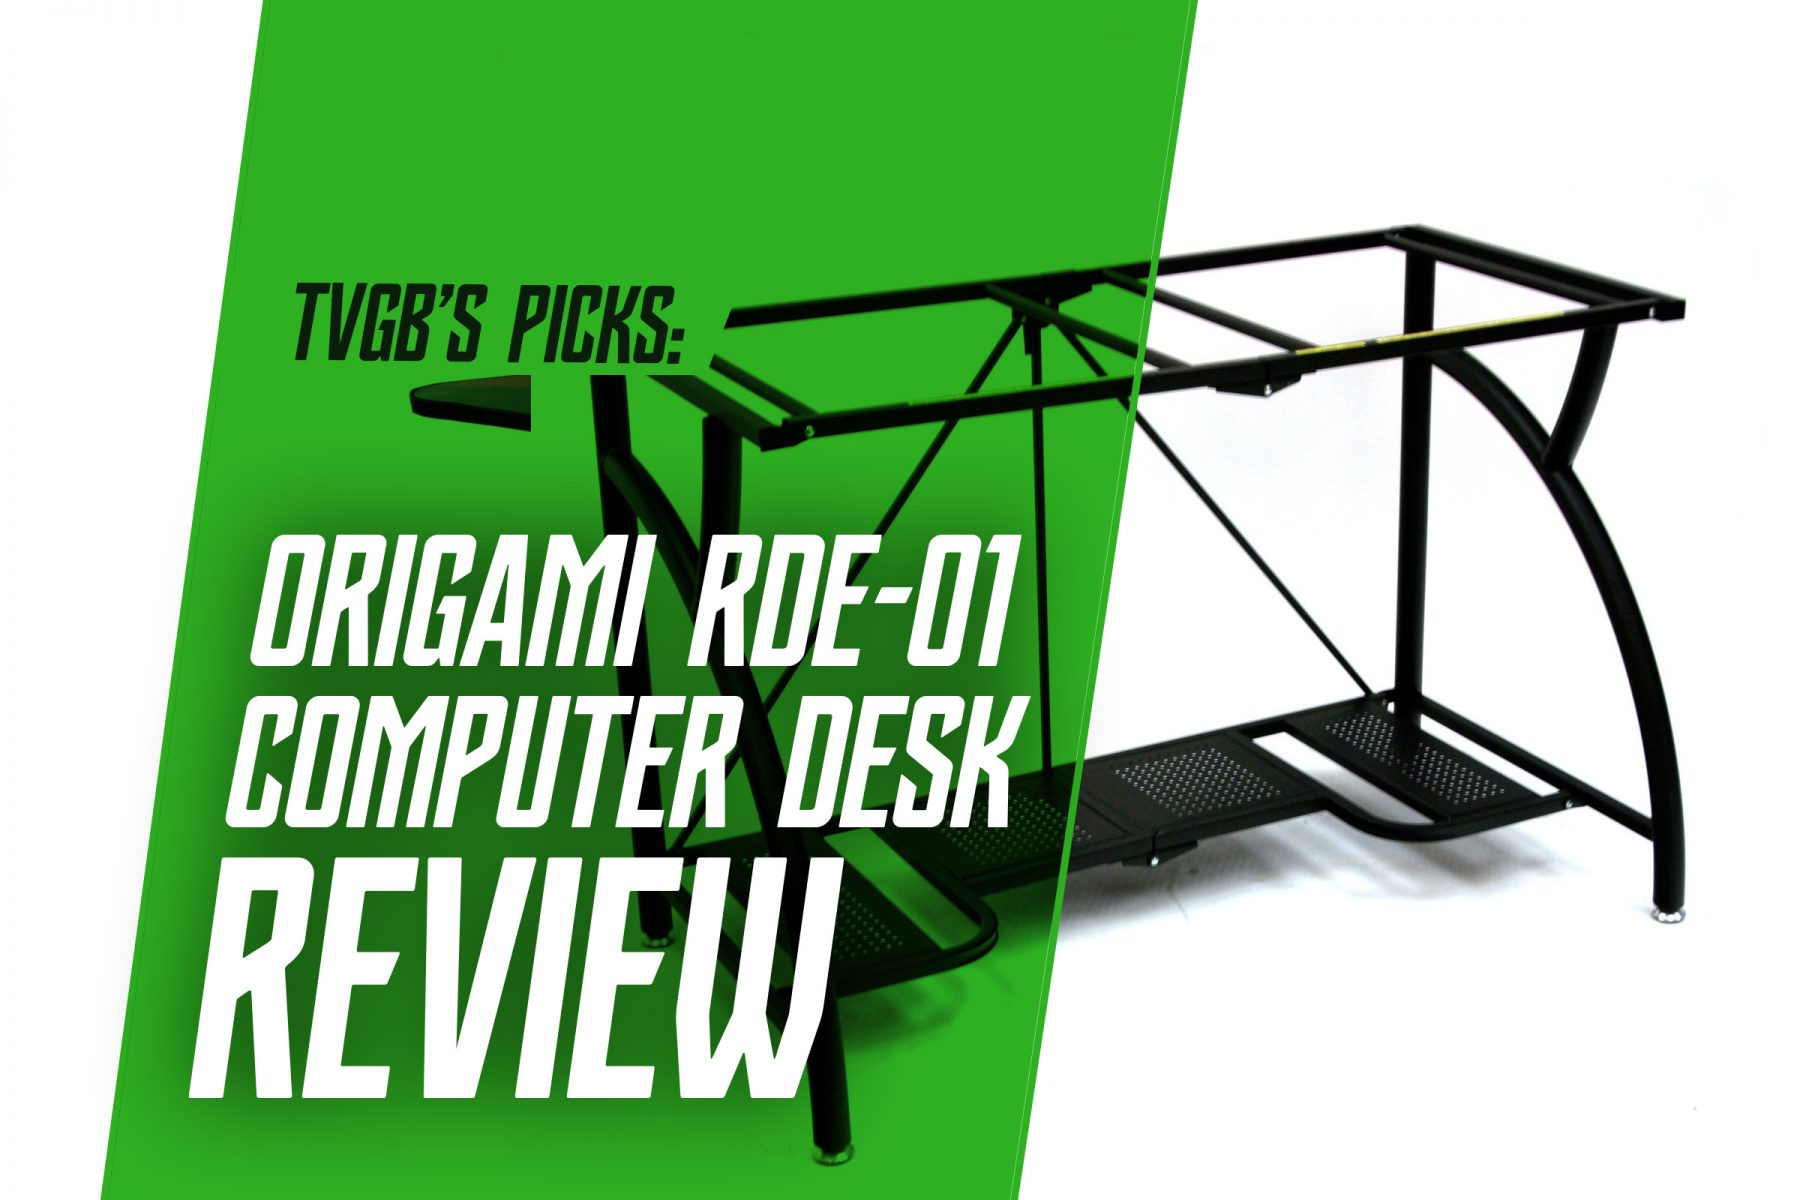 Origami RDE-01 Computer Desk Review